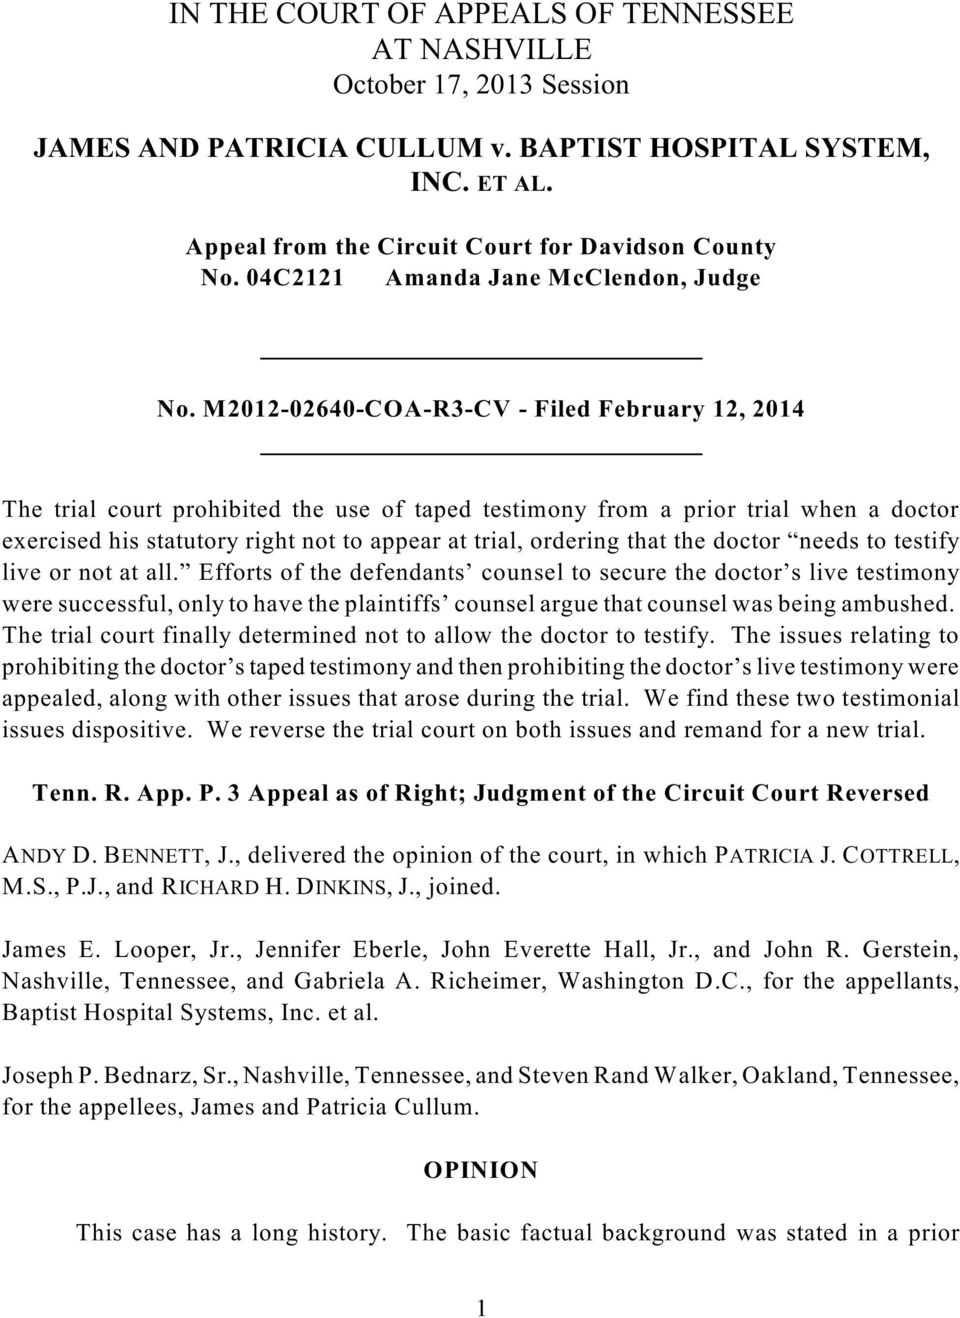 M2012-02640-COA-R3-CV - Filed February 12, 2014 The trial court prohibited the use of taped testimony from a prior trial when a doctor exercised his statutory right not to appear at trial, ordering